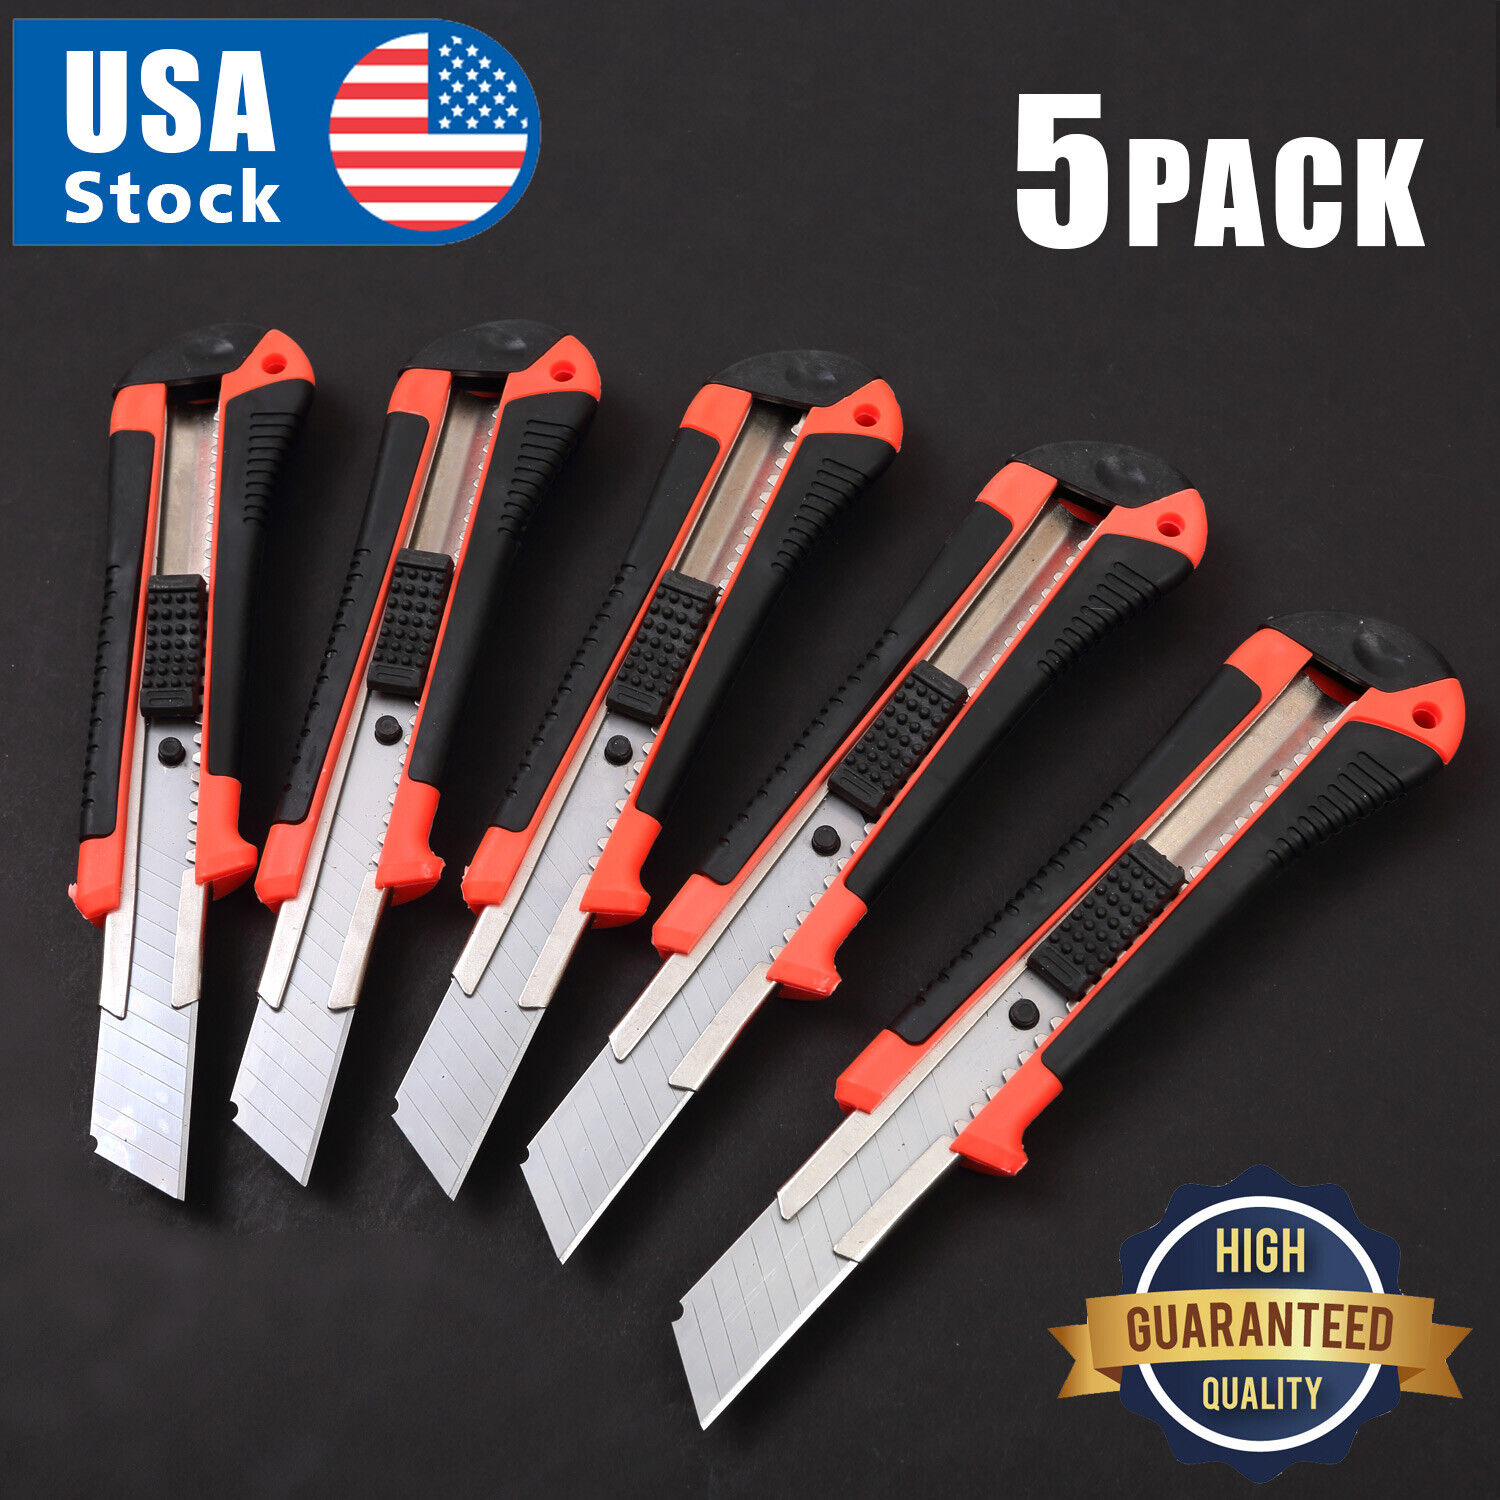 5 PACK 18 mm Knife Box Cutter Retractable Snap Off Lock Blade Tool Razor Sharp Hand Tools